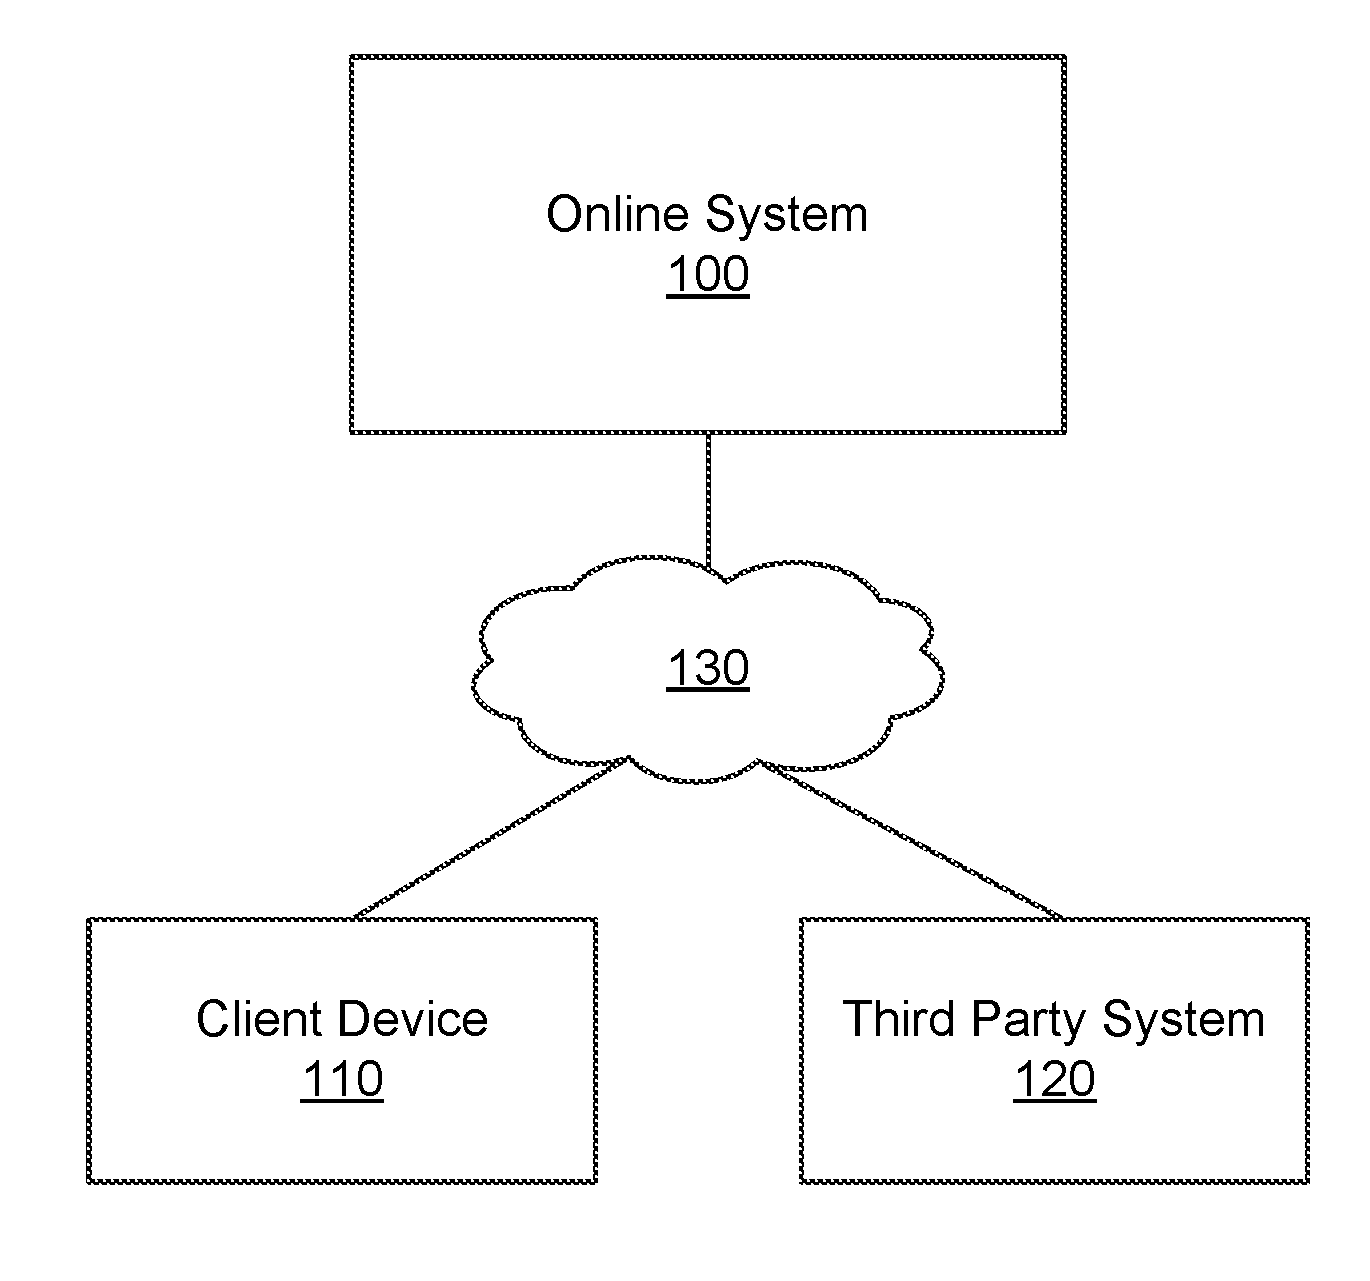 Socioeconomic group classification based on user features  - US-2018032883-A1